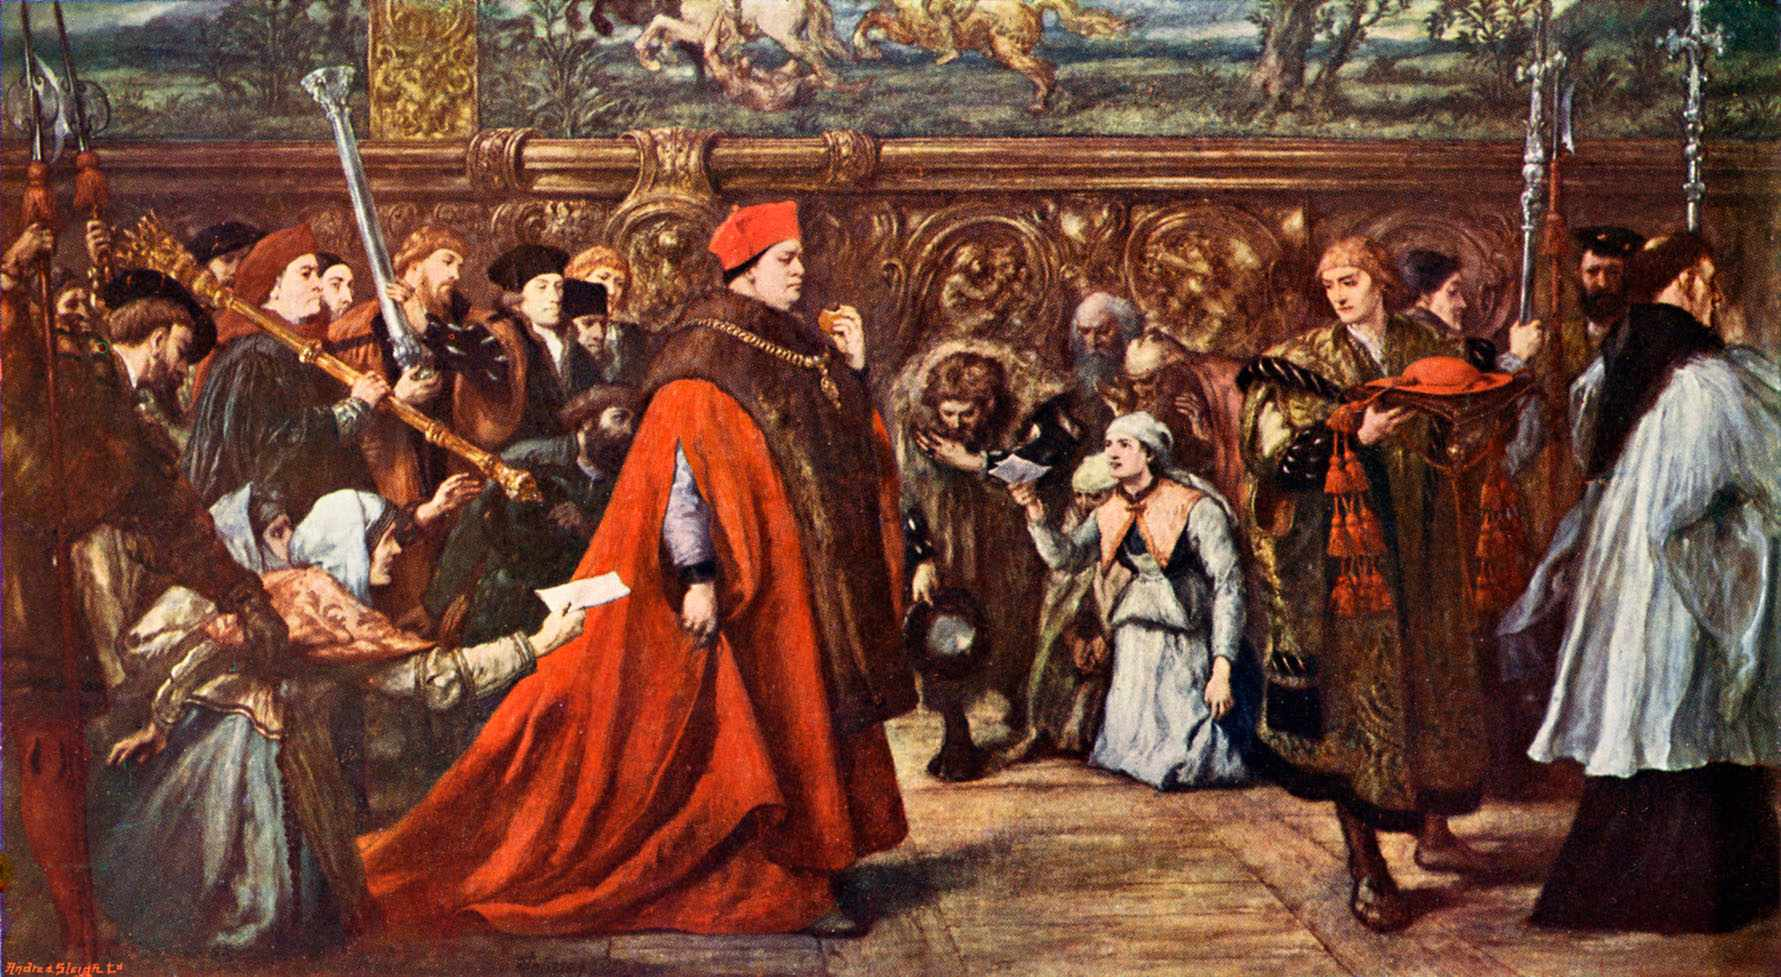 Cardinal Wolsey going in procession to Westminster Hall. Reproduced from the original by Sir John Gilbert in 1886-7. (Photo by Culture Club/Getty Images)